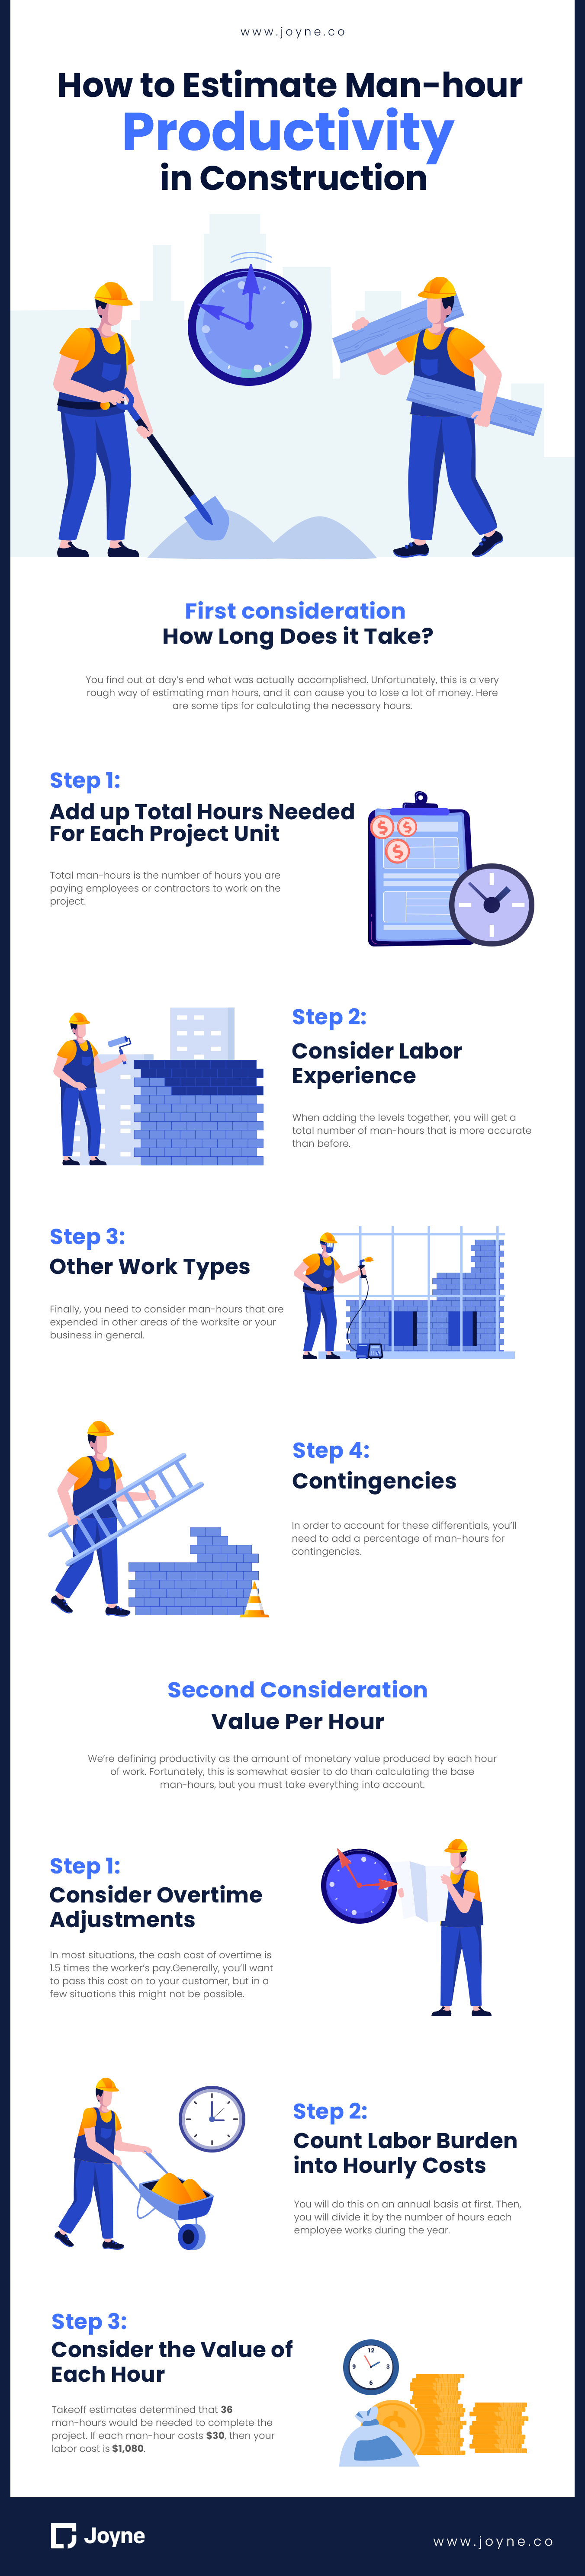 How to estimate man-hour productivity in construction infographic